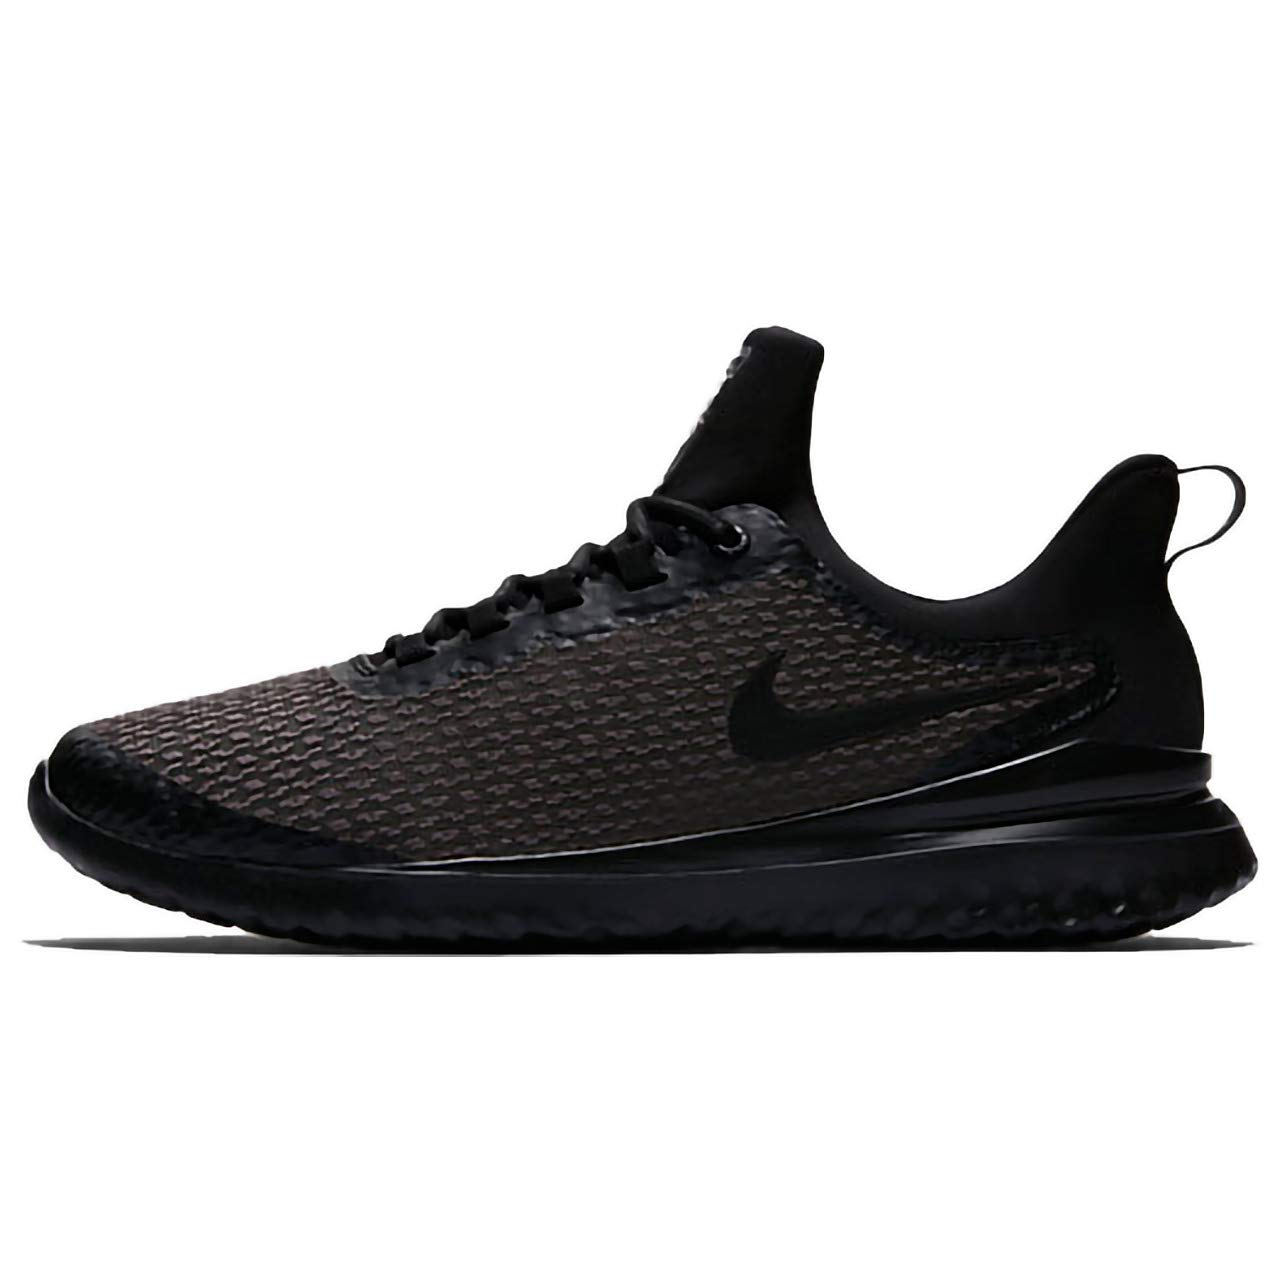 147922eabd8 Galleon - Nike Men s Renew Rival Running Shoe Oil Grey Black (11.5)